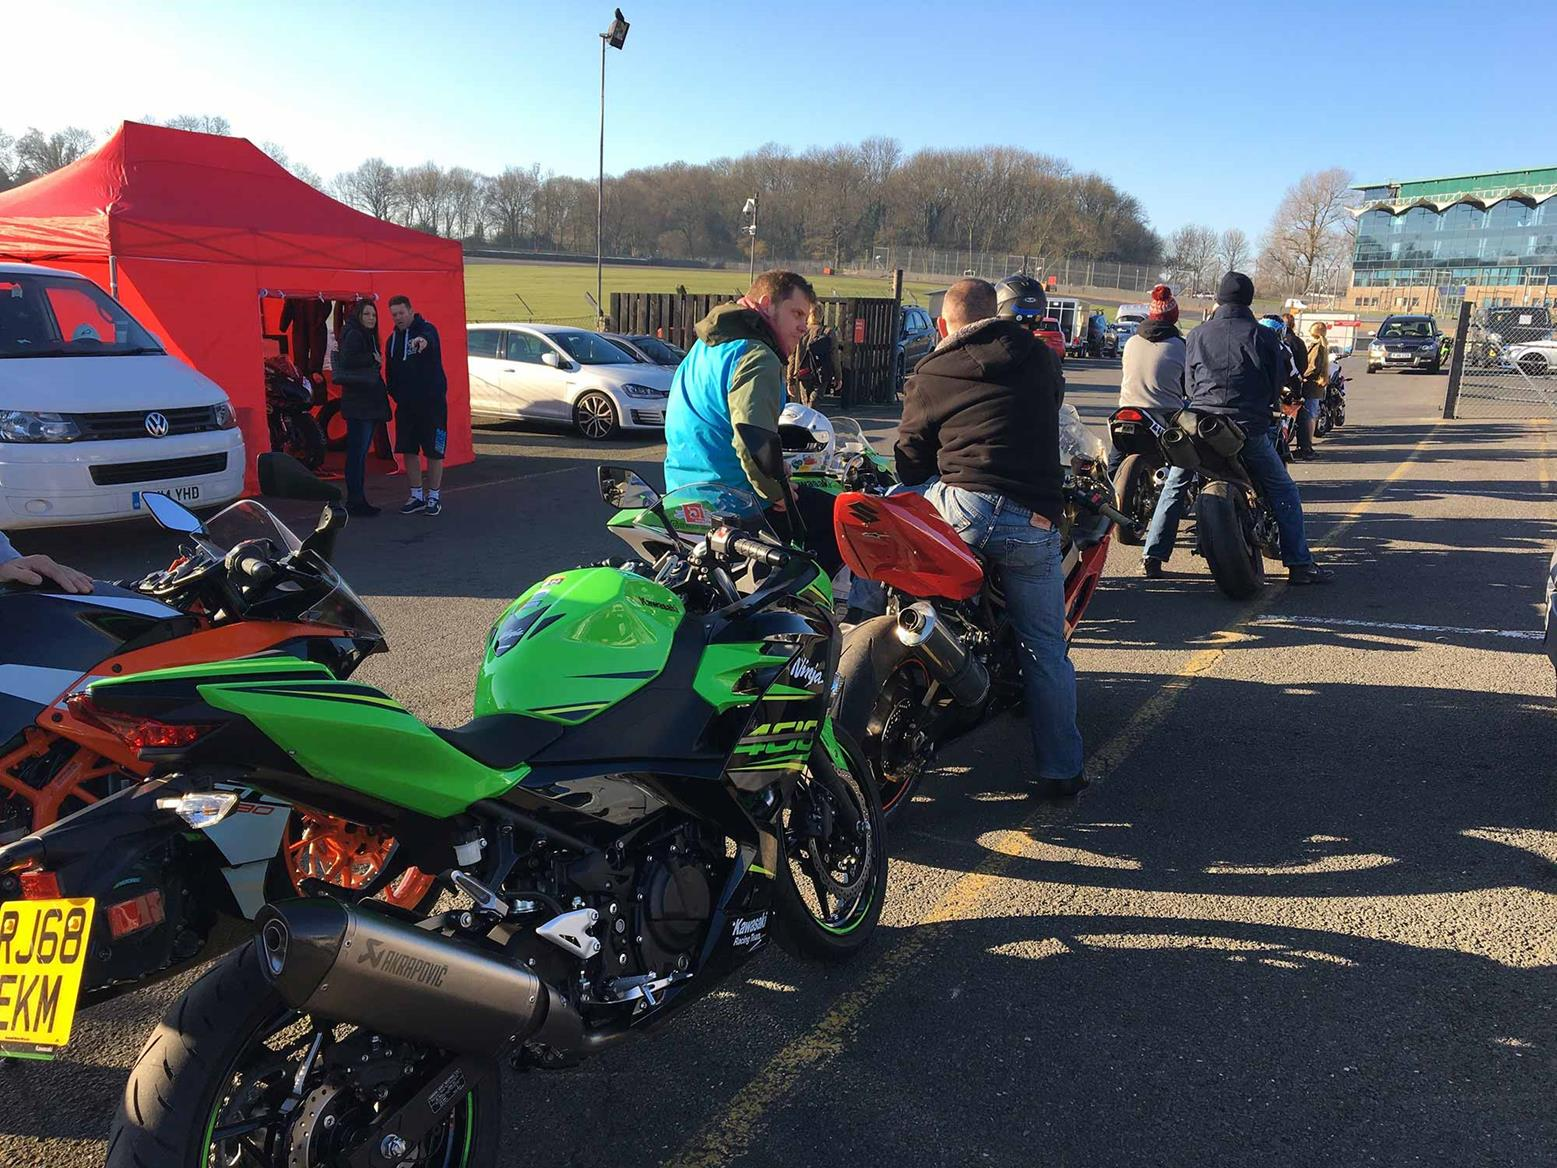 Queueing for noise testing with the bikes